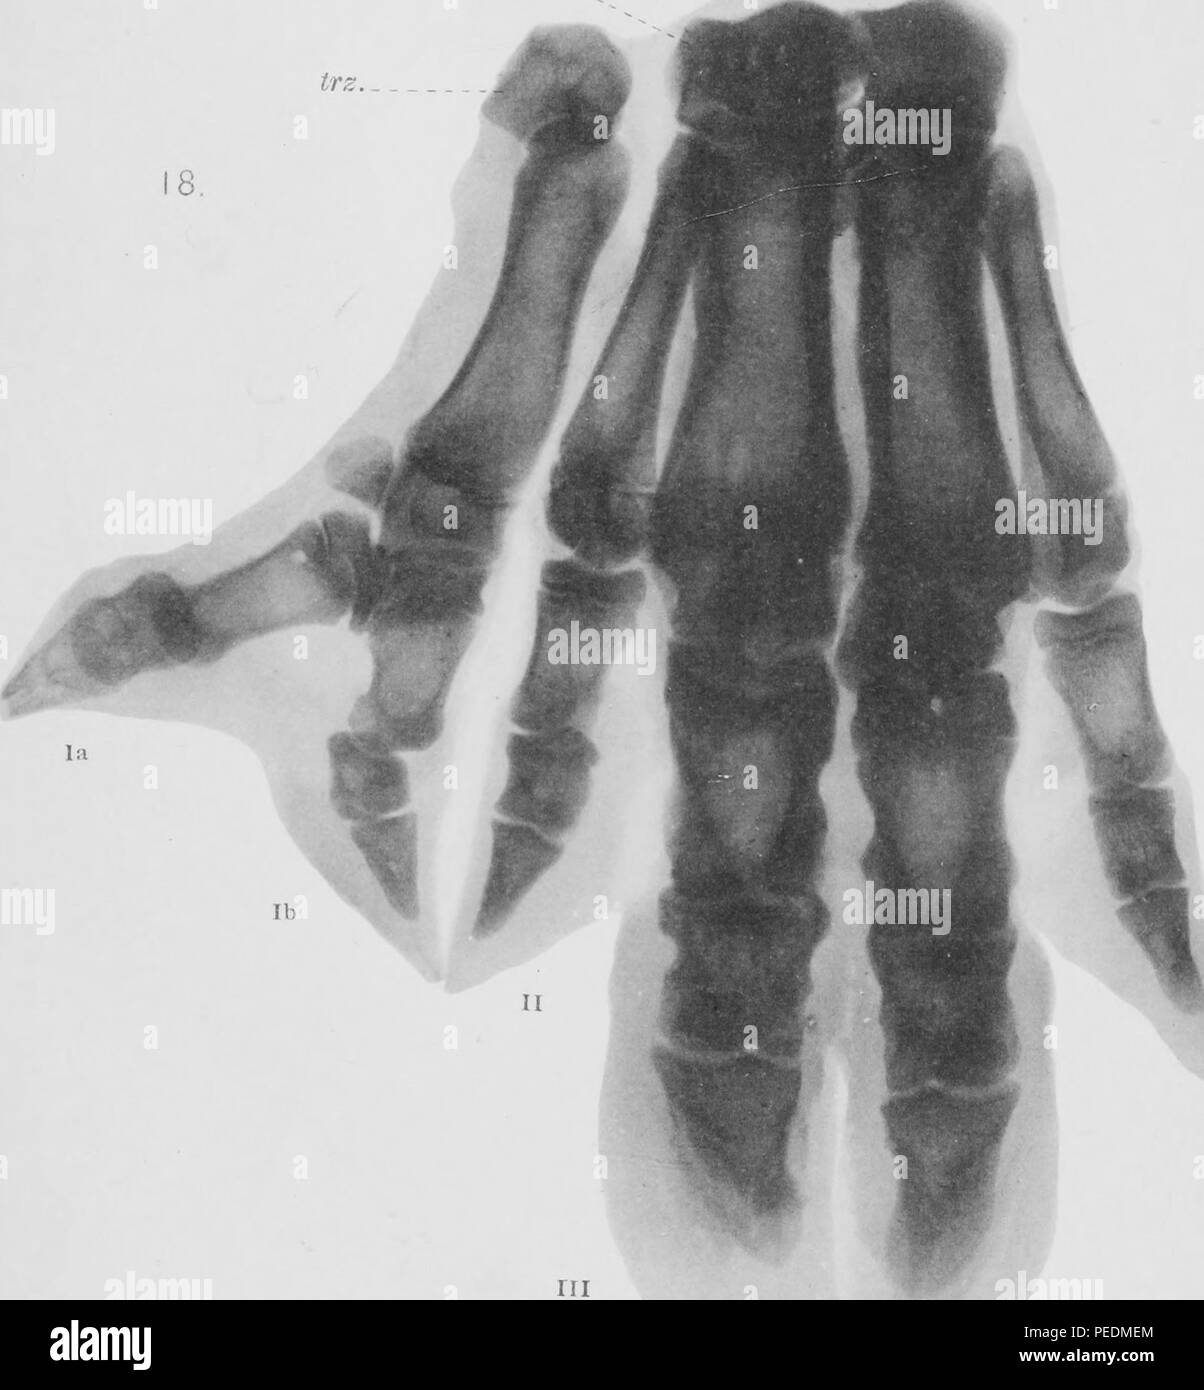 Heliotype of an x-ray showing a polydactyl pig's manus (lower limb), 1863. Courtesy Internet Archive. () - Stock Image